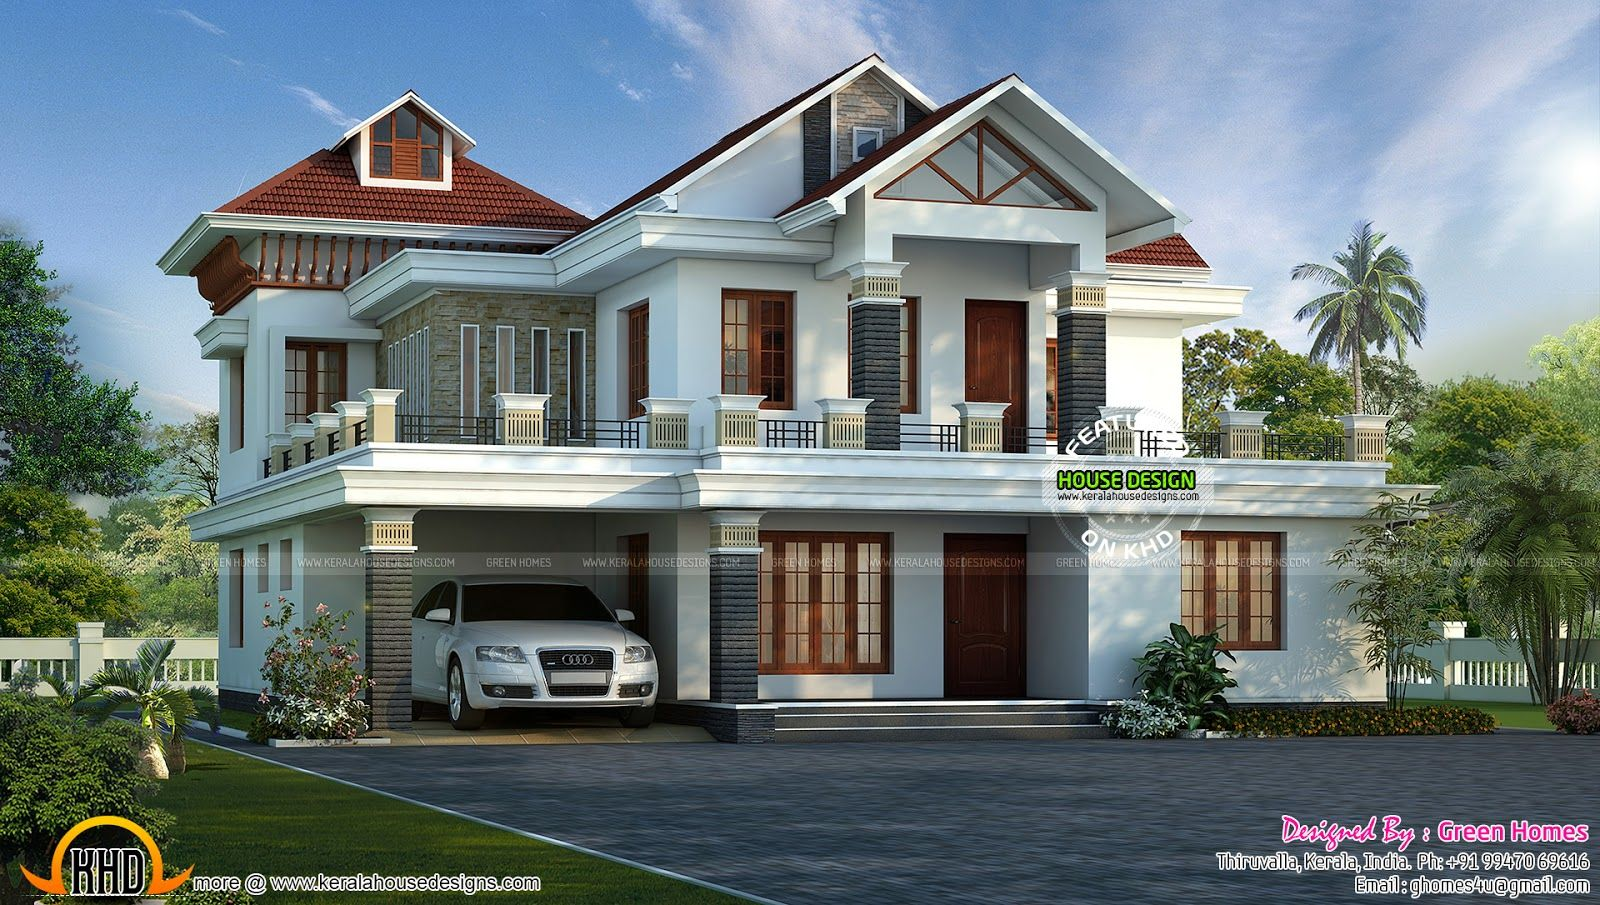 Indien Haus home india one of my proposed house design